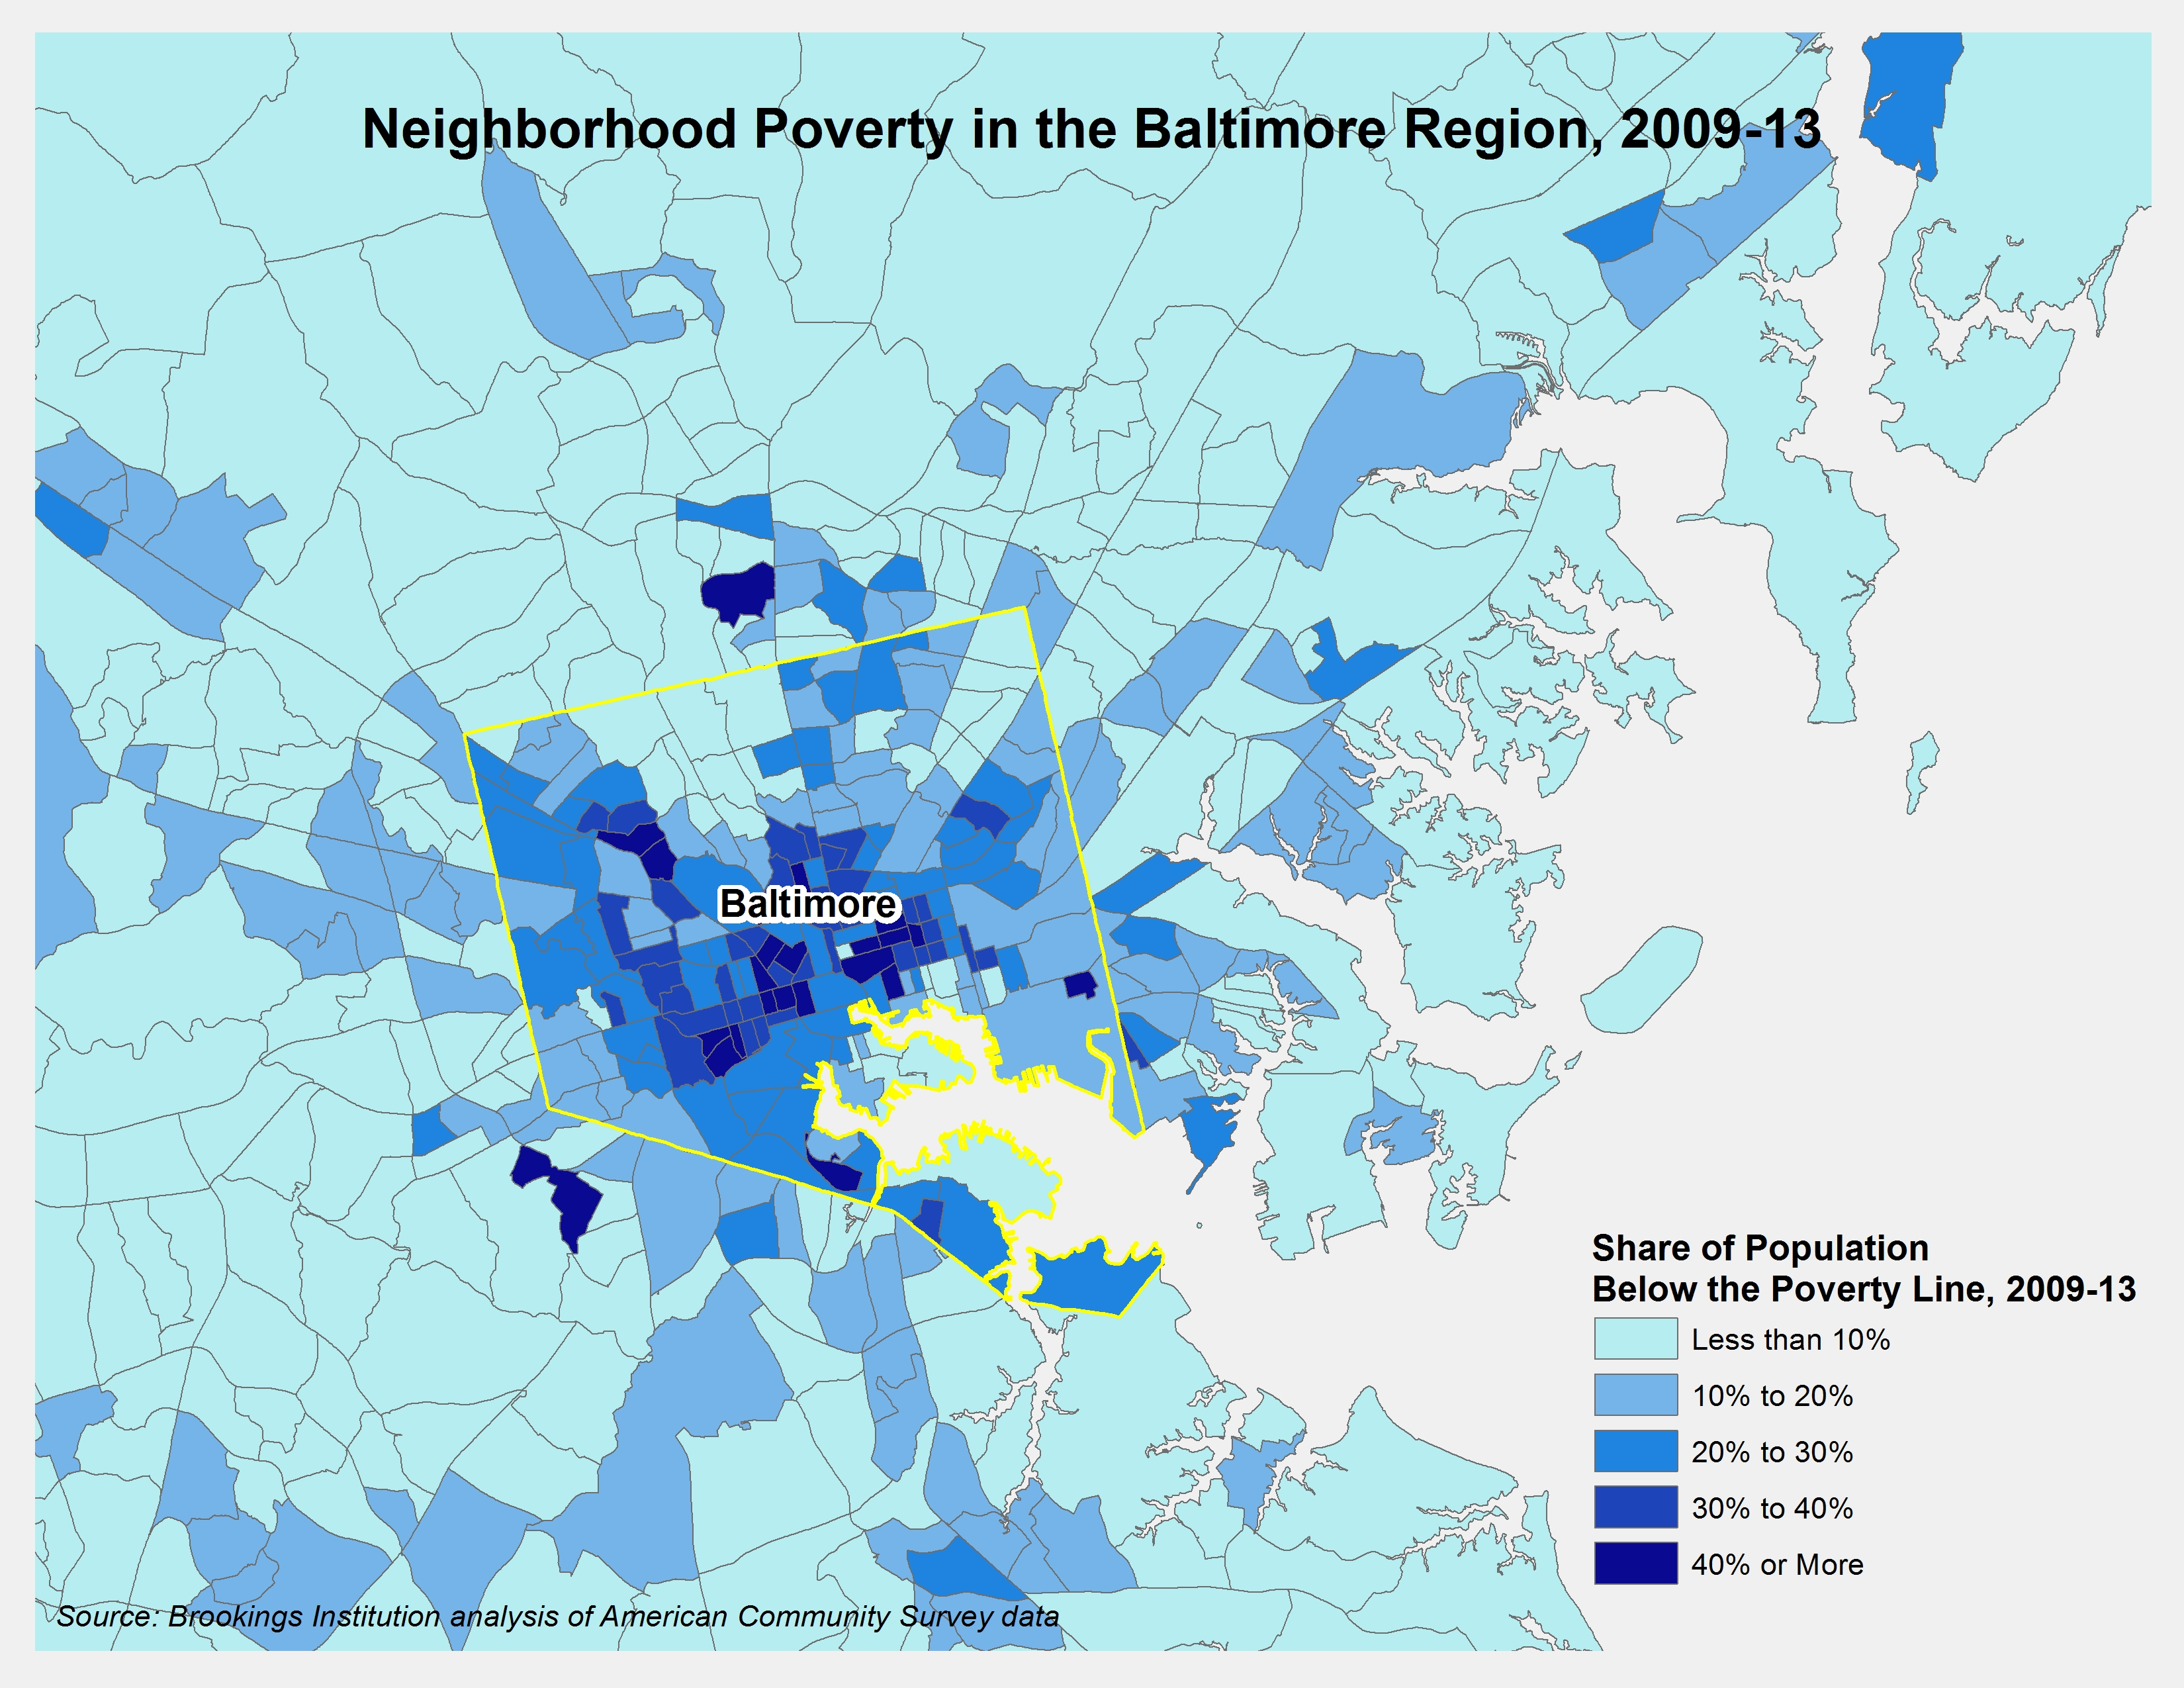 Beyond Baltimore: Thoughts on place, race, and opportunity